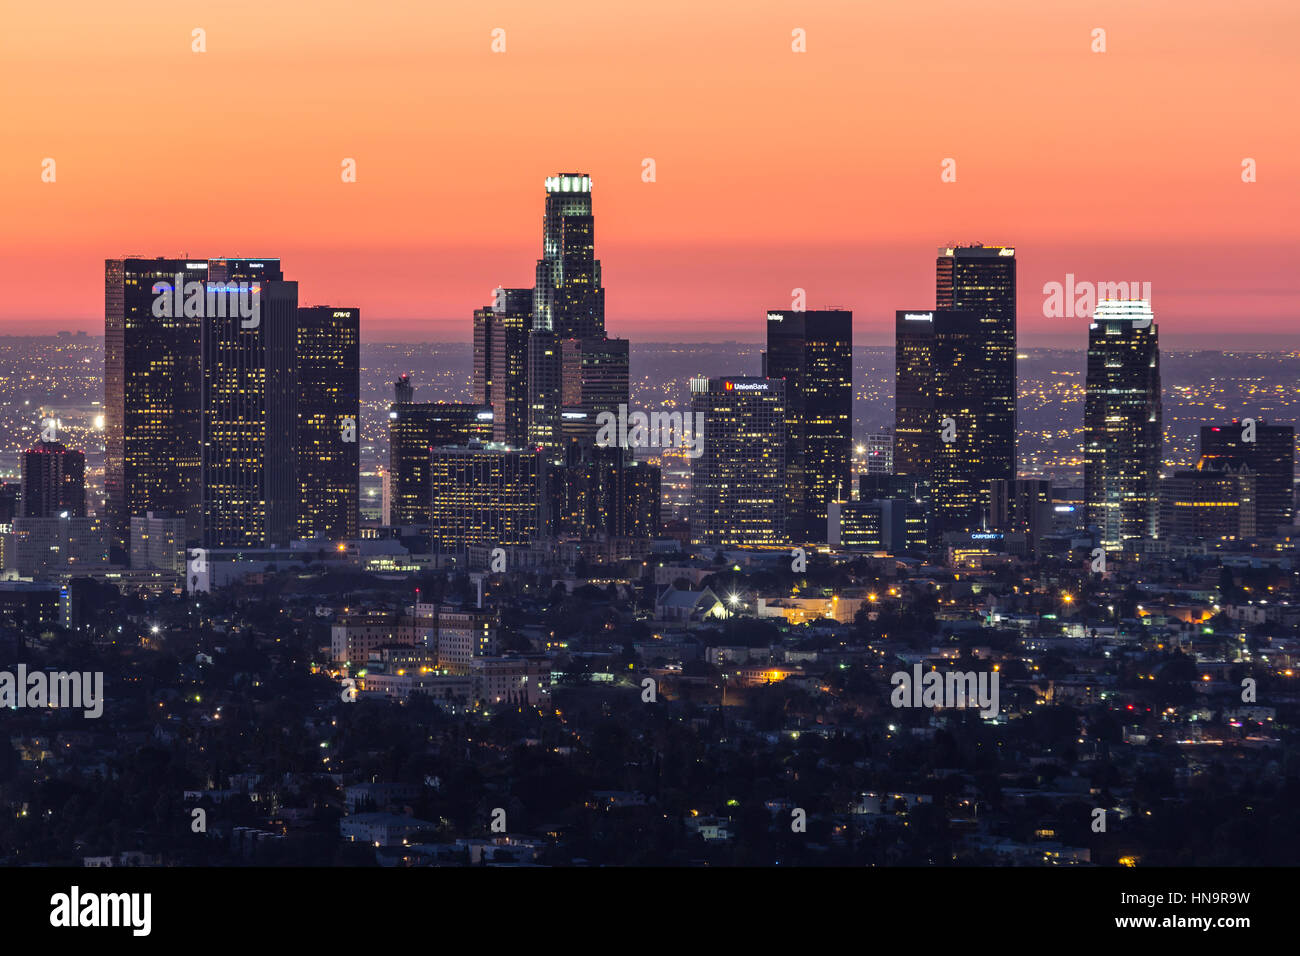 Pre dawn editorial view of downtown Los Angeles. California. Stock Photo